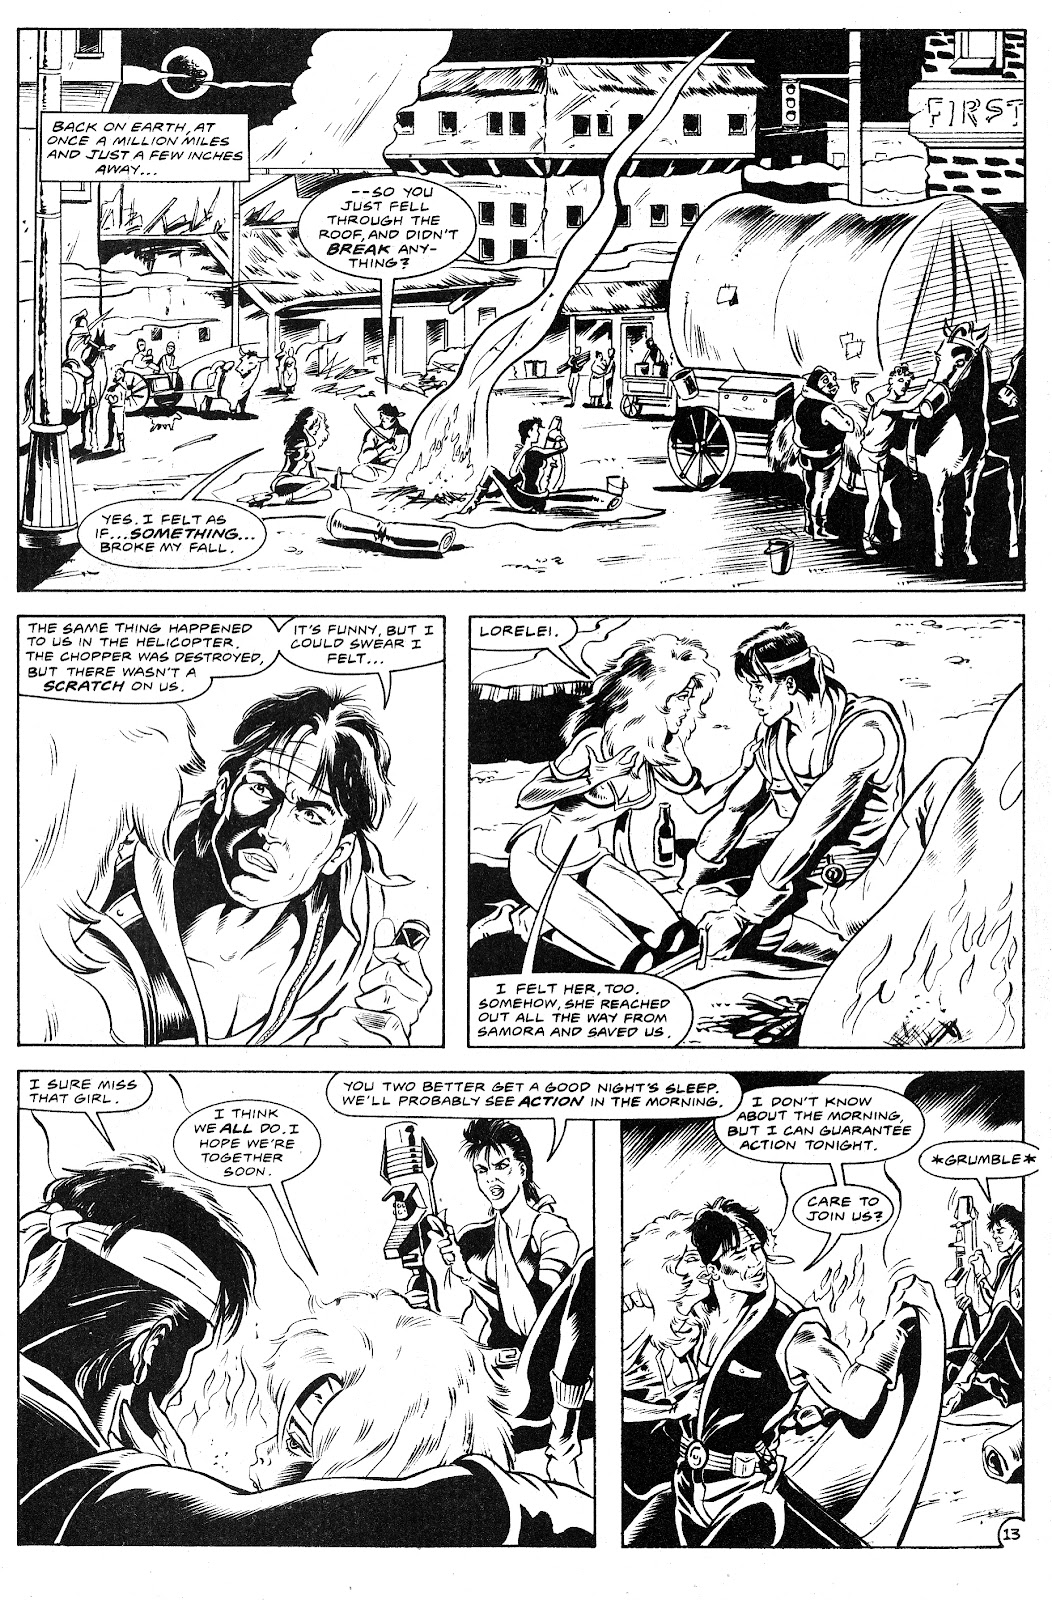 Ex-Mutants: The Shattered Earth Chronicles issue 9 - Page 15